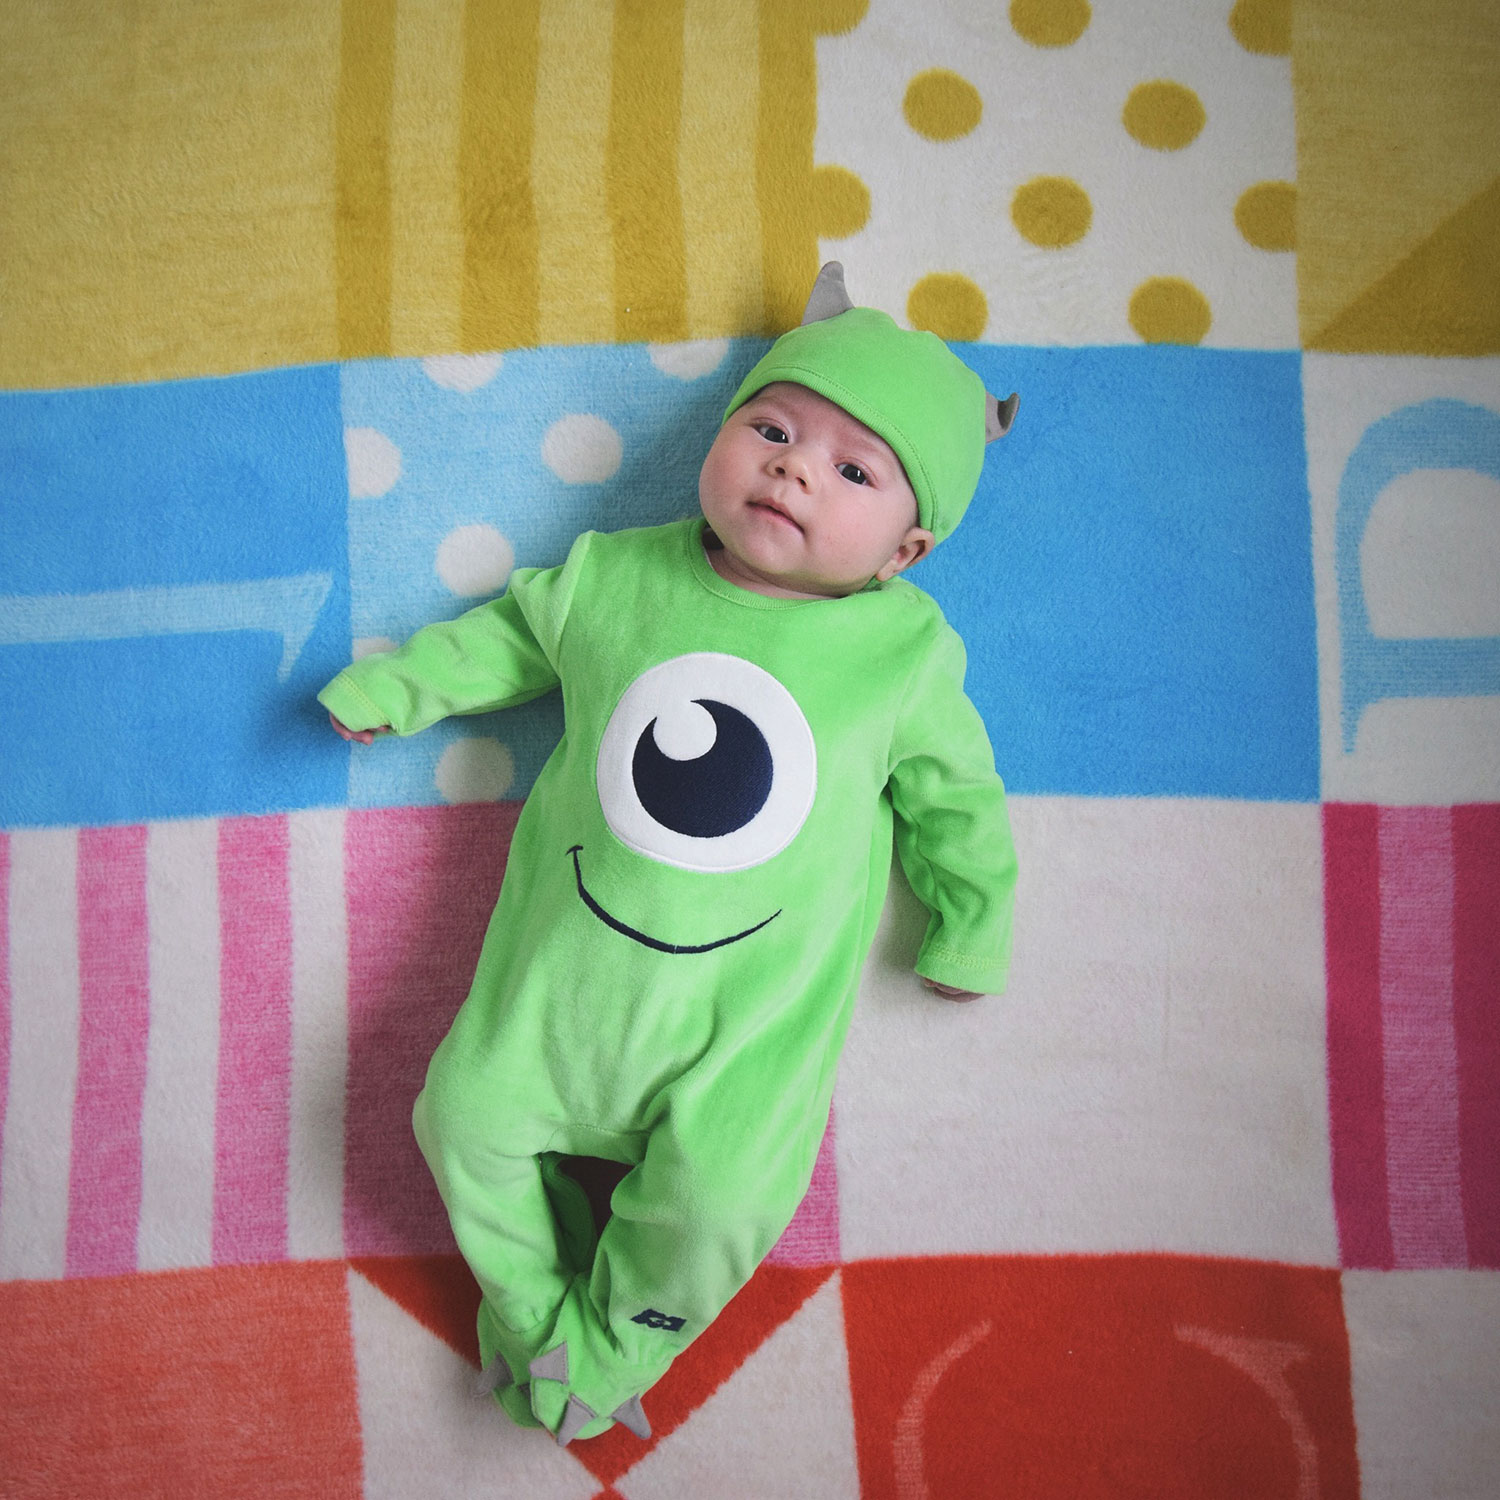 Fashion Friday; We Scare Because We Care // 044 - Toddler and newborn baby boy brothers/siblings dressed up in fancy dress for Halloween as Sully and Mike Wazowski/Mikey from Monsters Inc, ASDA George outfits